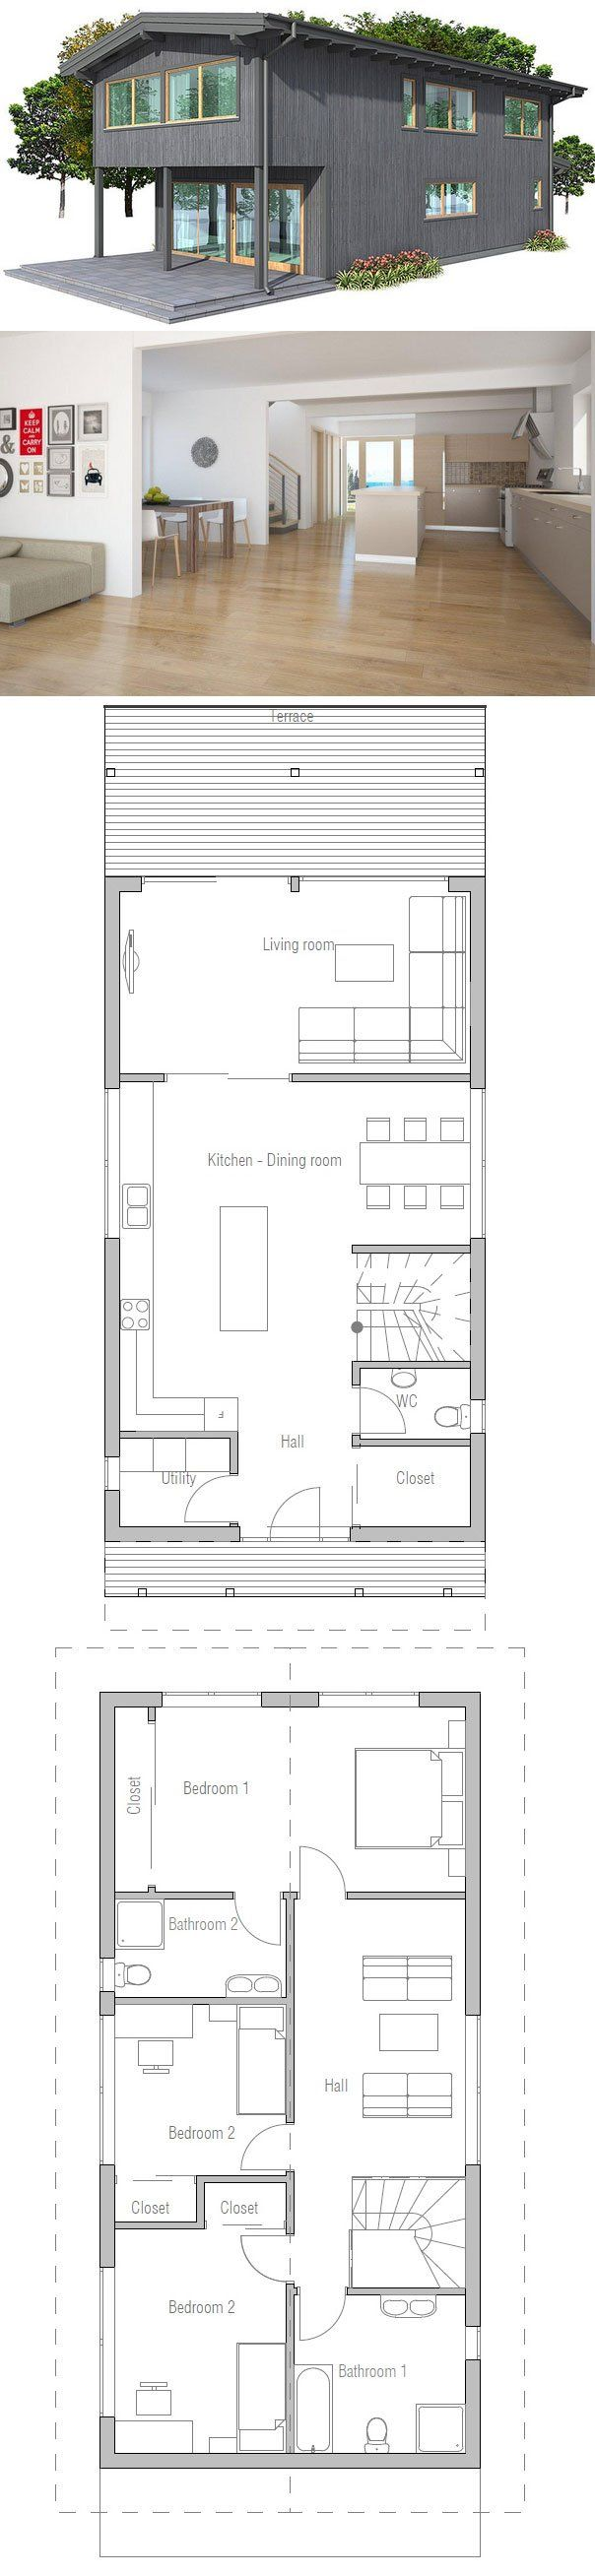 Affordable narrow house to tiny lot. Floor Plan from ConceptHome.com